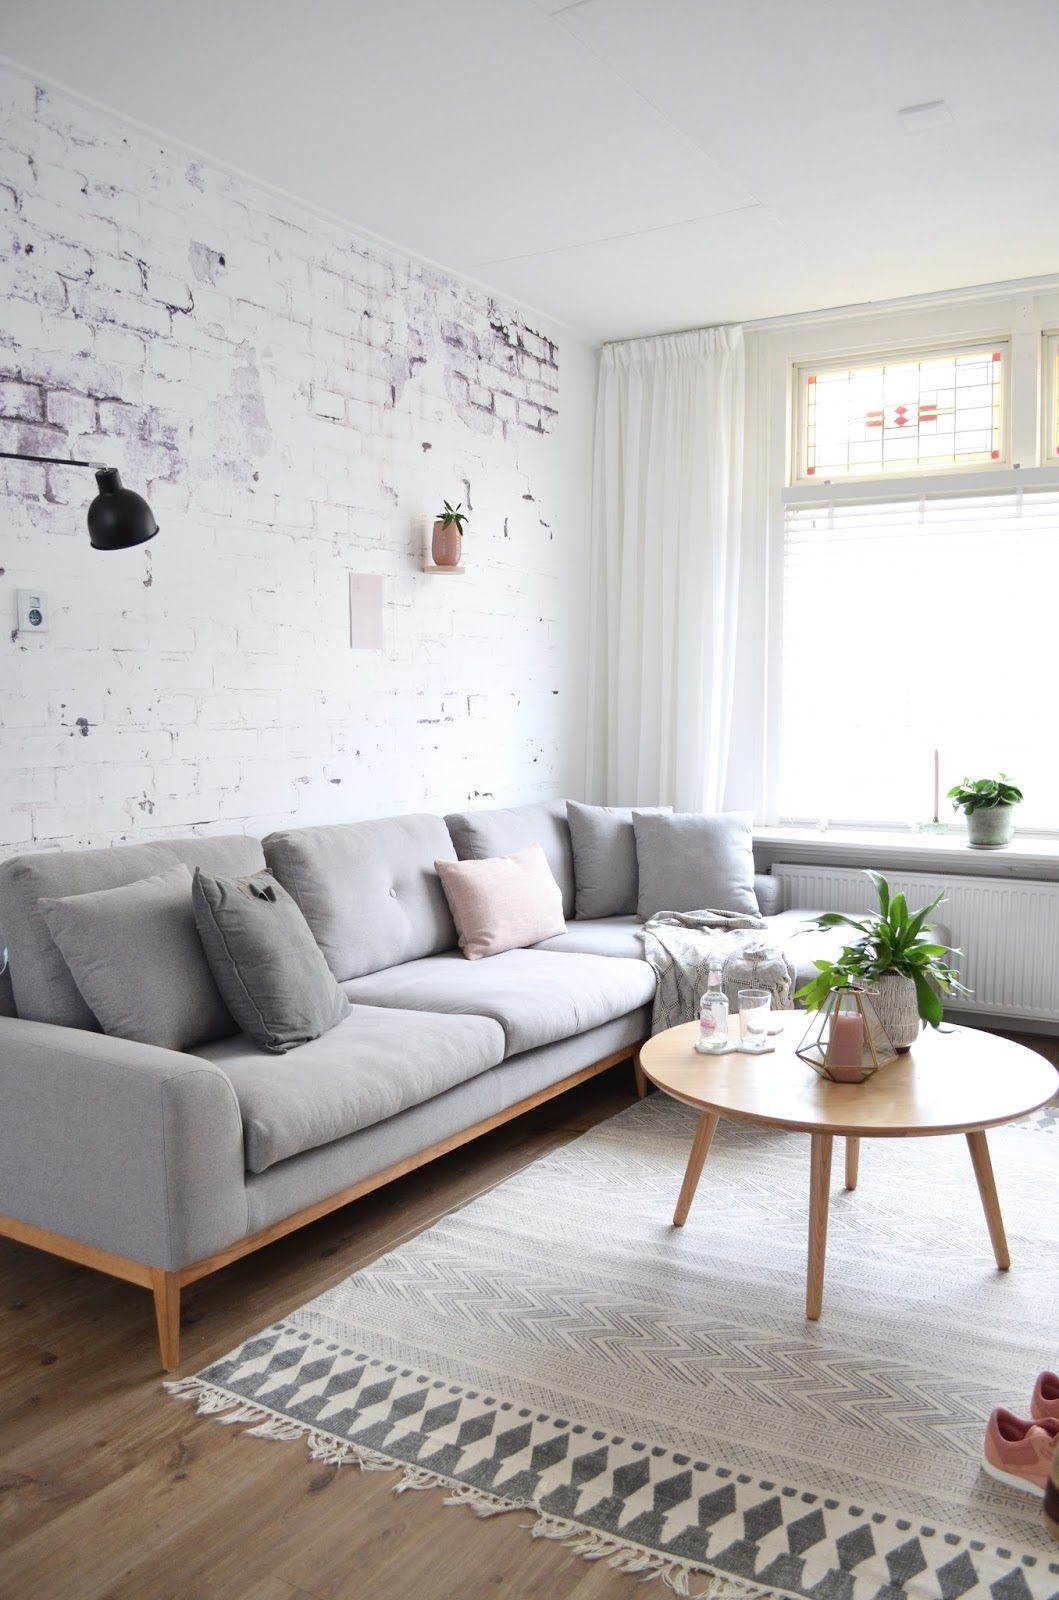 30 Small Living Room Ideas Make The Most Of Your Space